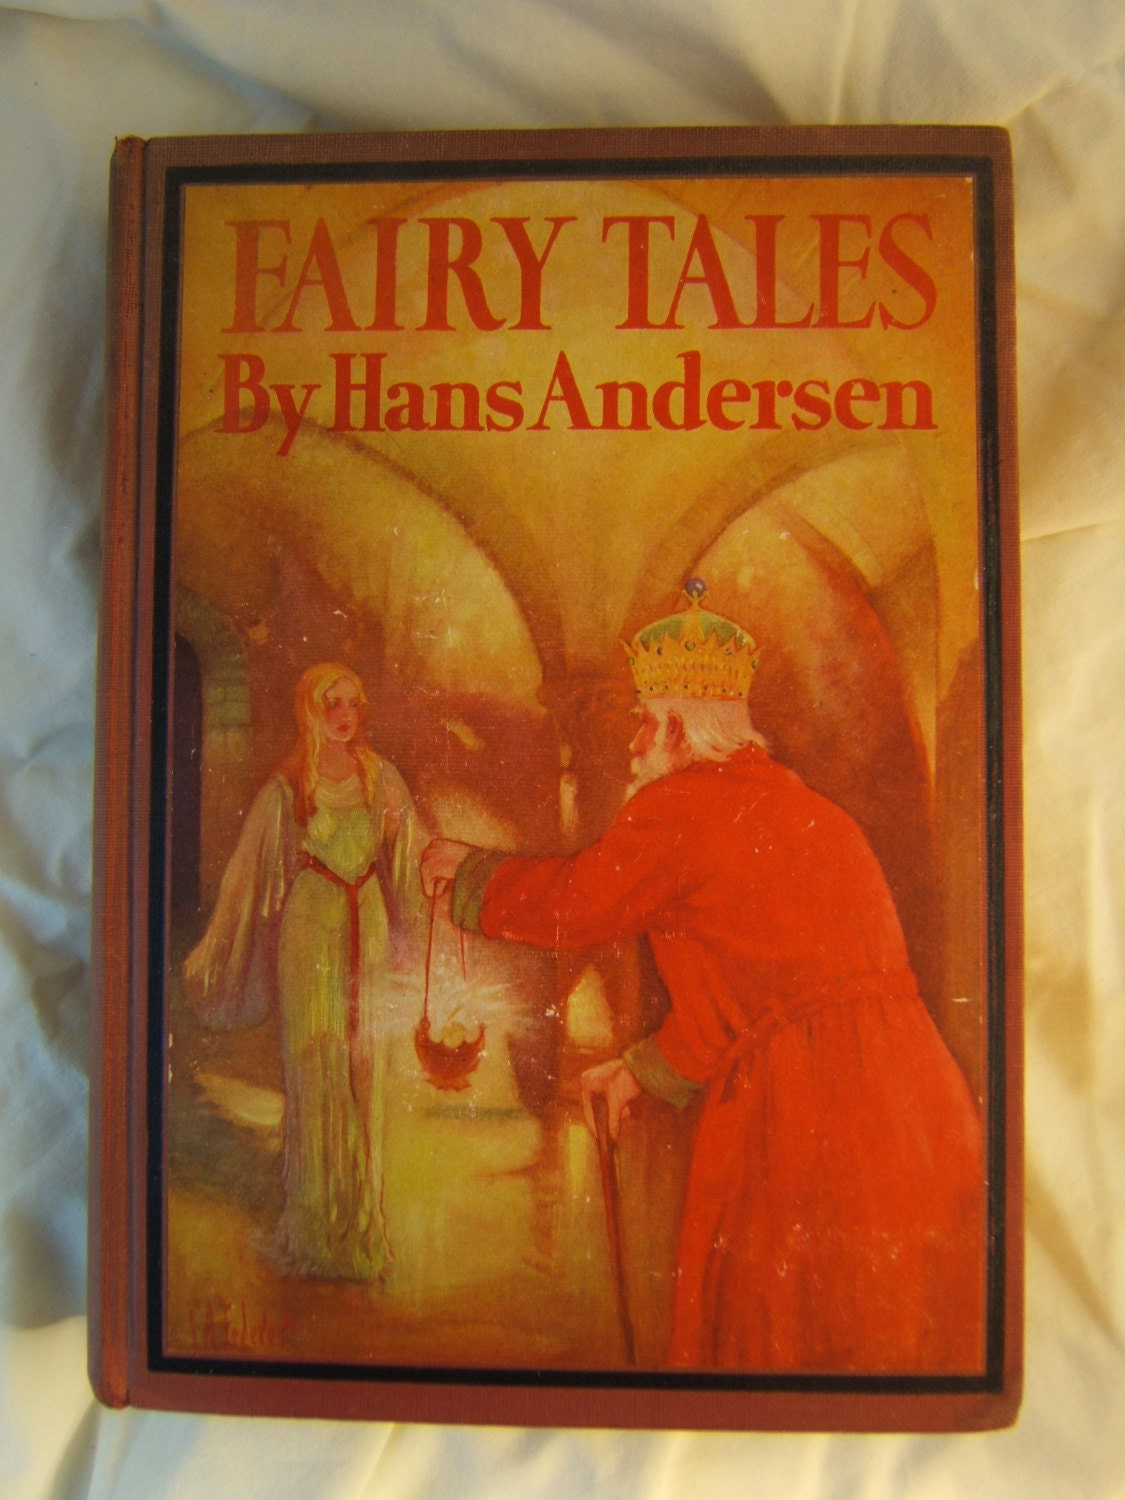 the tale of king yunan and duban the doctor The resource tales from the thousand and one nights, translated with an introd by n j dawood  the tale of king yunan and duban the doctor.